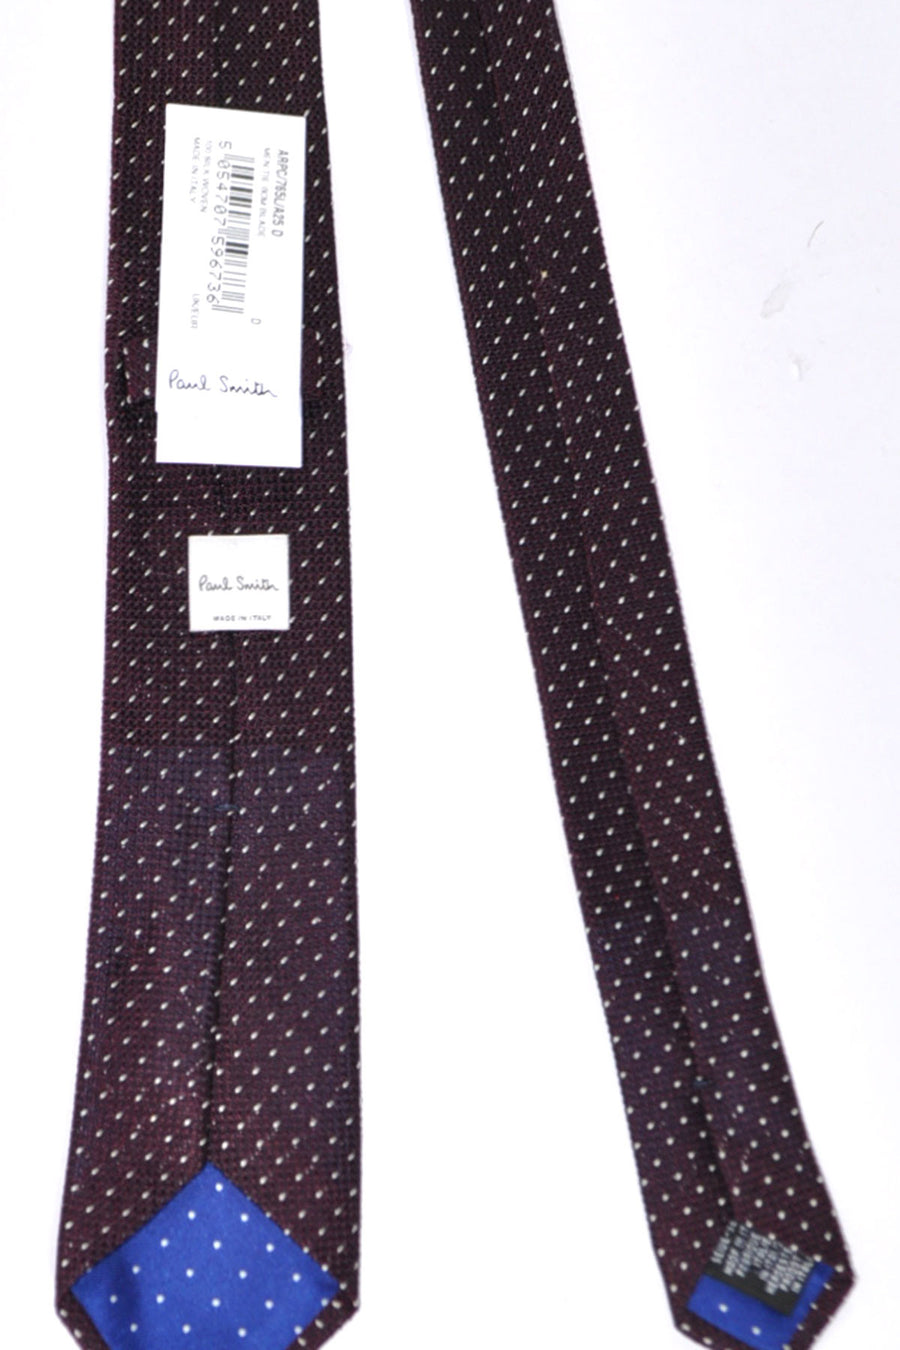 Paul Smith Skinny Tie Brown Burgundy  Silver Mini Dots - FINAL SALE